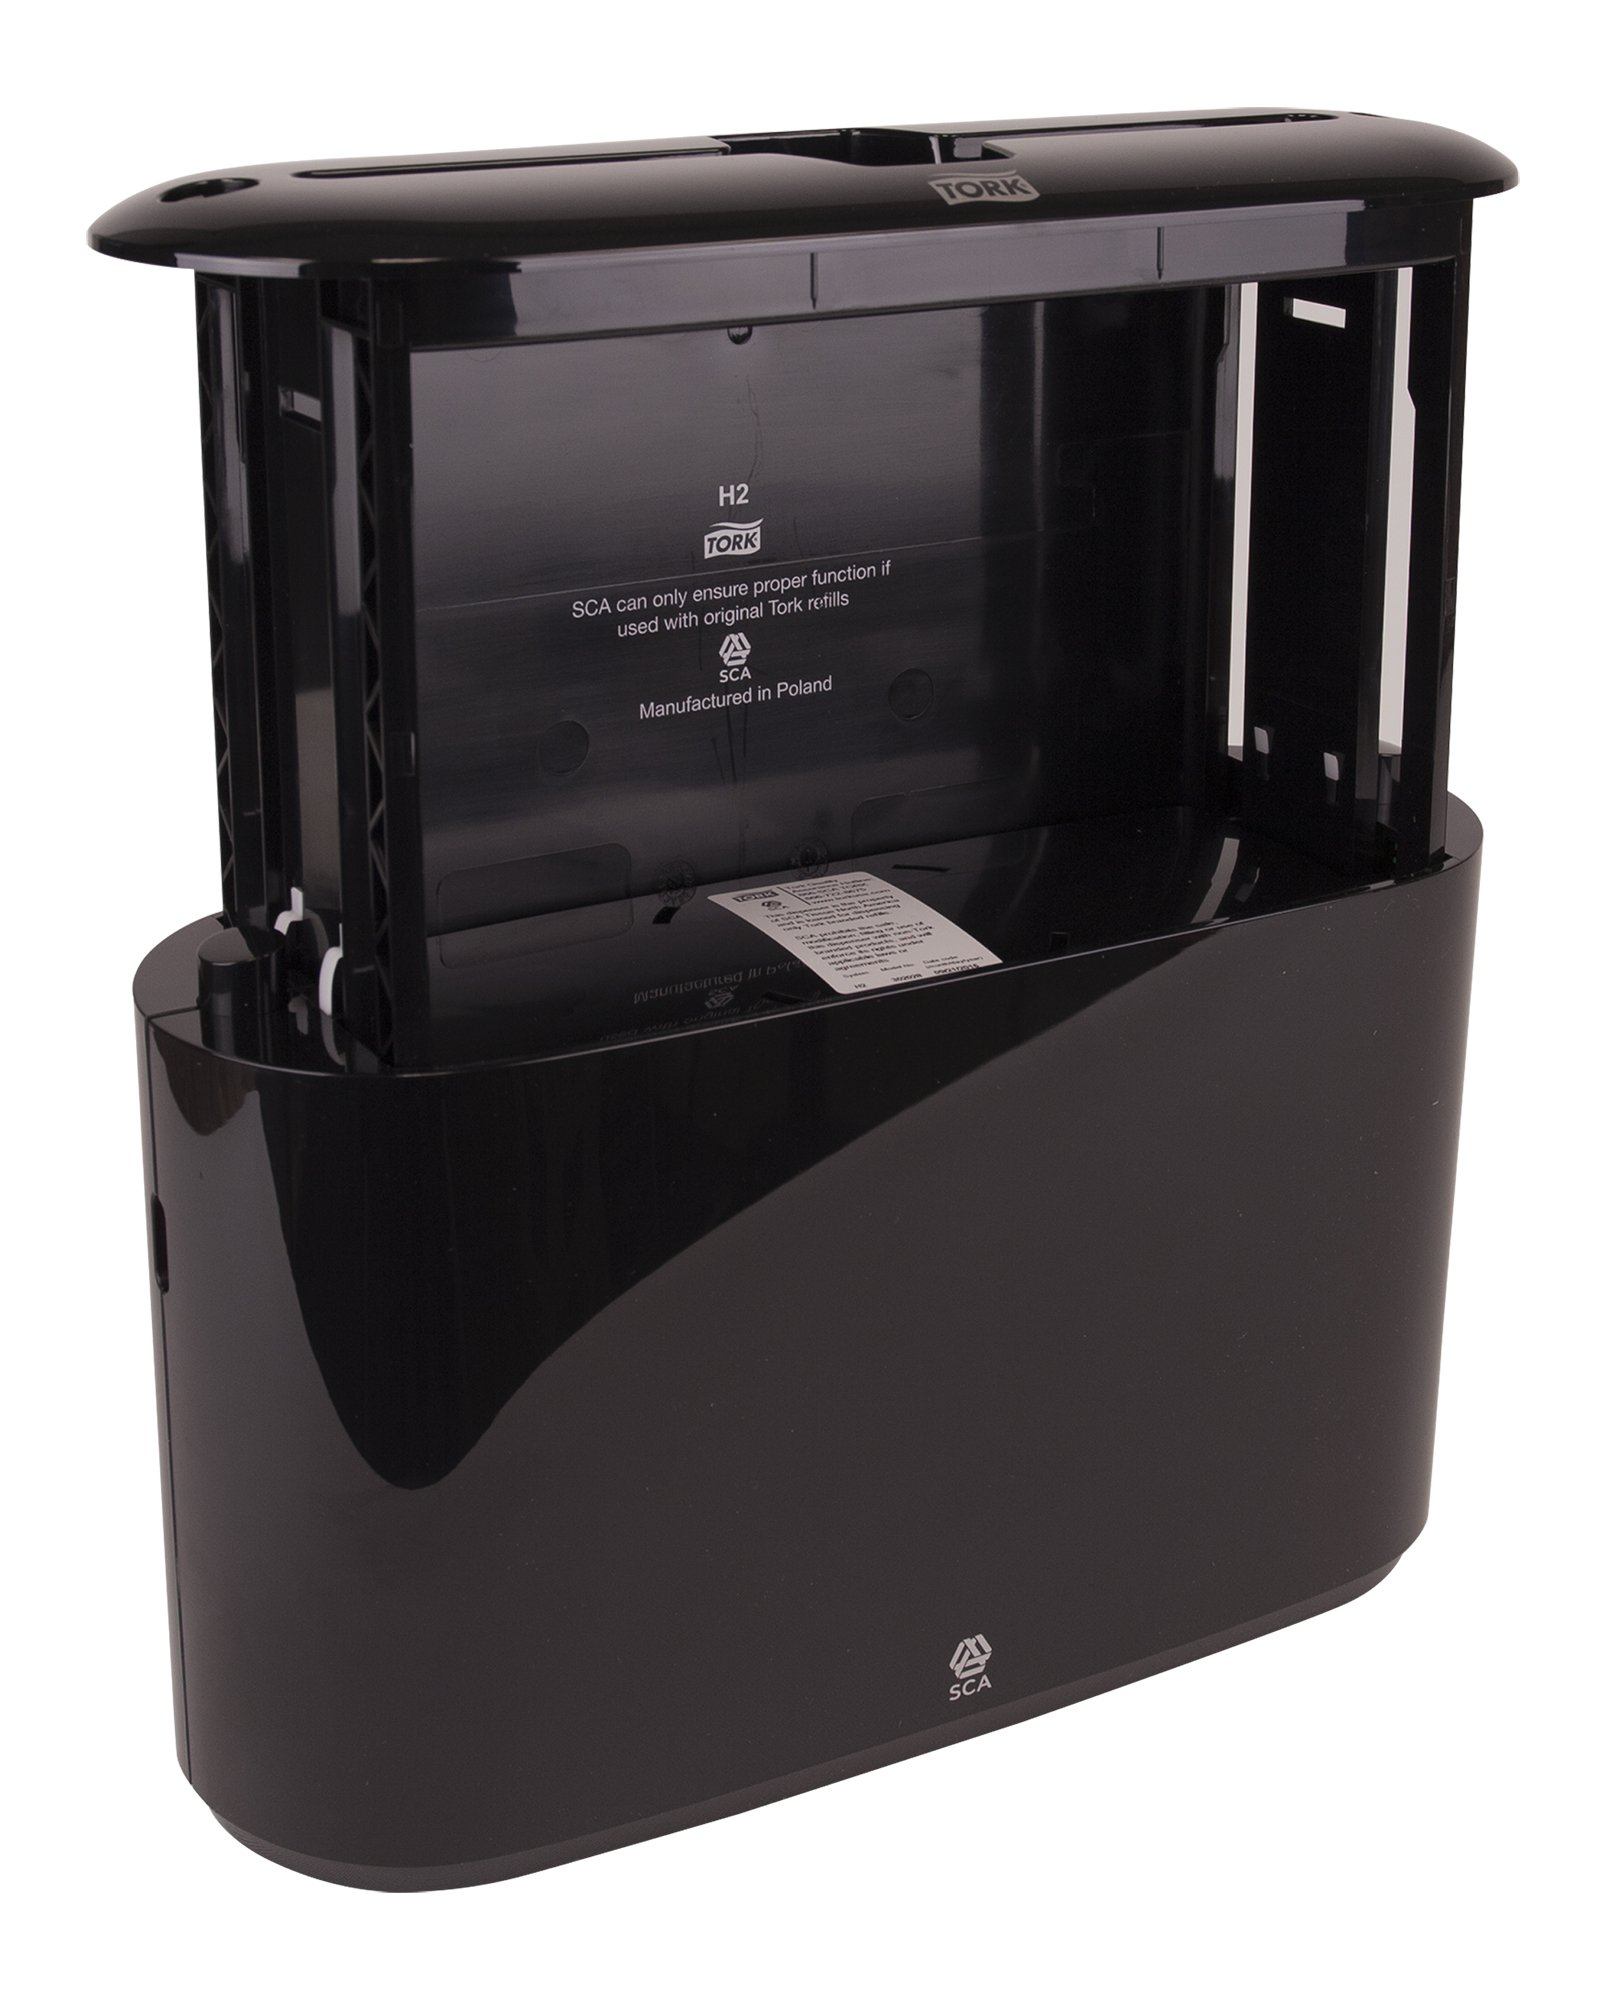 Tork 302028 Xpress Countertop Multifold Hand Towel Dispenser, Plastic, 7.92'' Height x 12.68'' Width x 4.56'' Depth, Black, for use with Tork MB550A, MB640, MB540A, H2/H23 by Tork (Image #5)